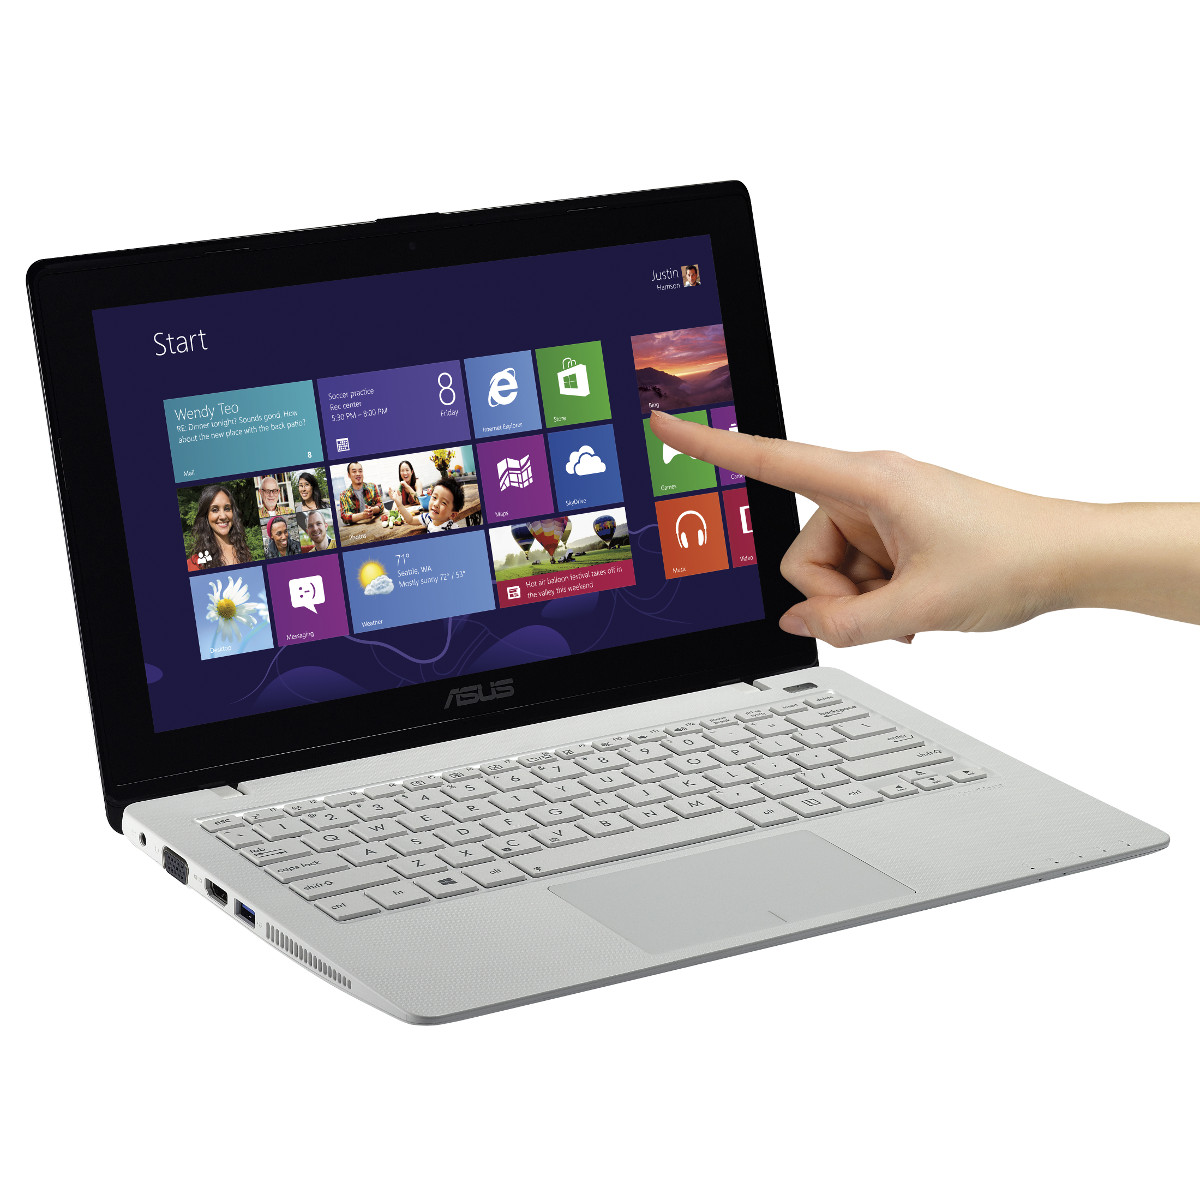 asus vivobook x200ma ct457h blanc pc portable asus sur. Black Bedroom Furniture Sets. Home Design Ideas